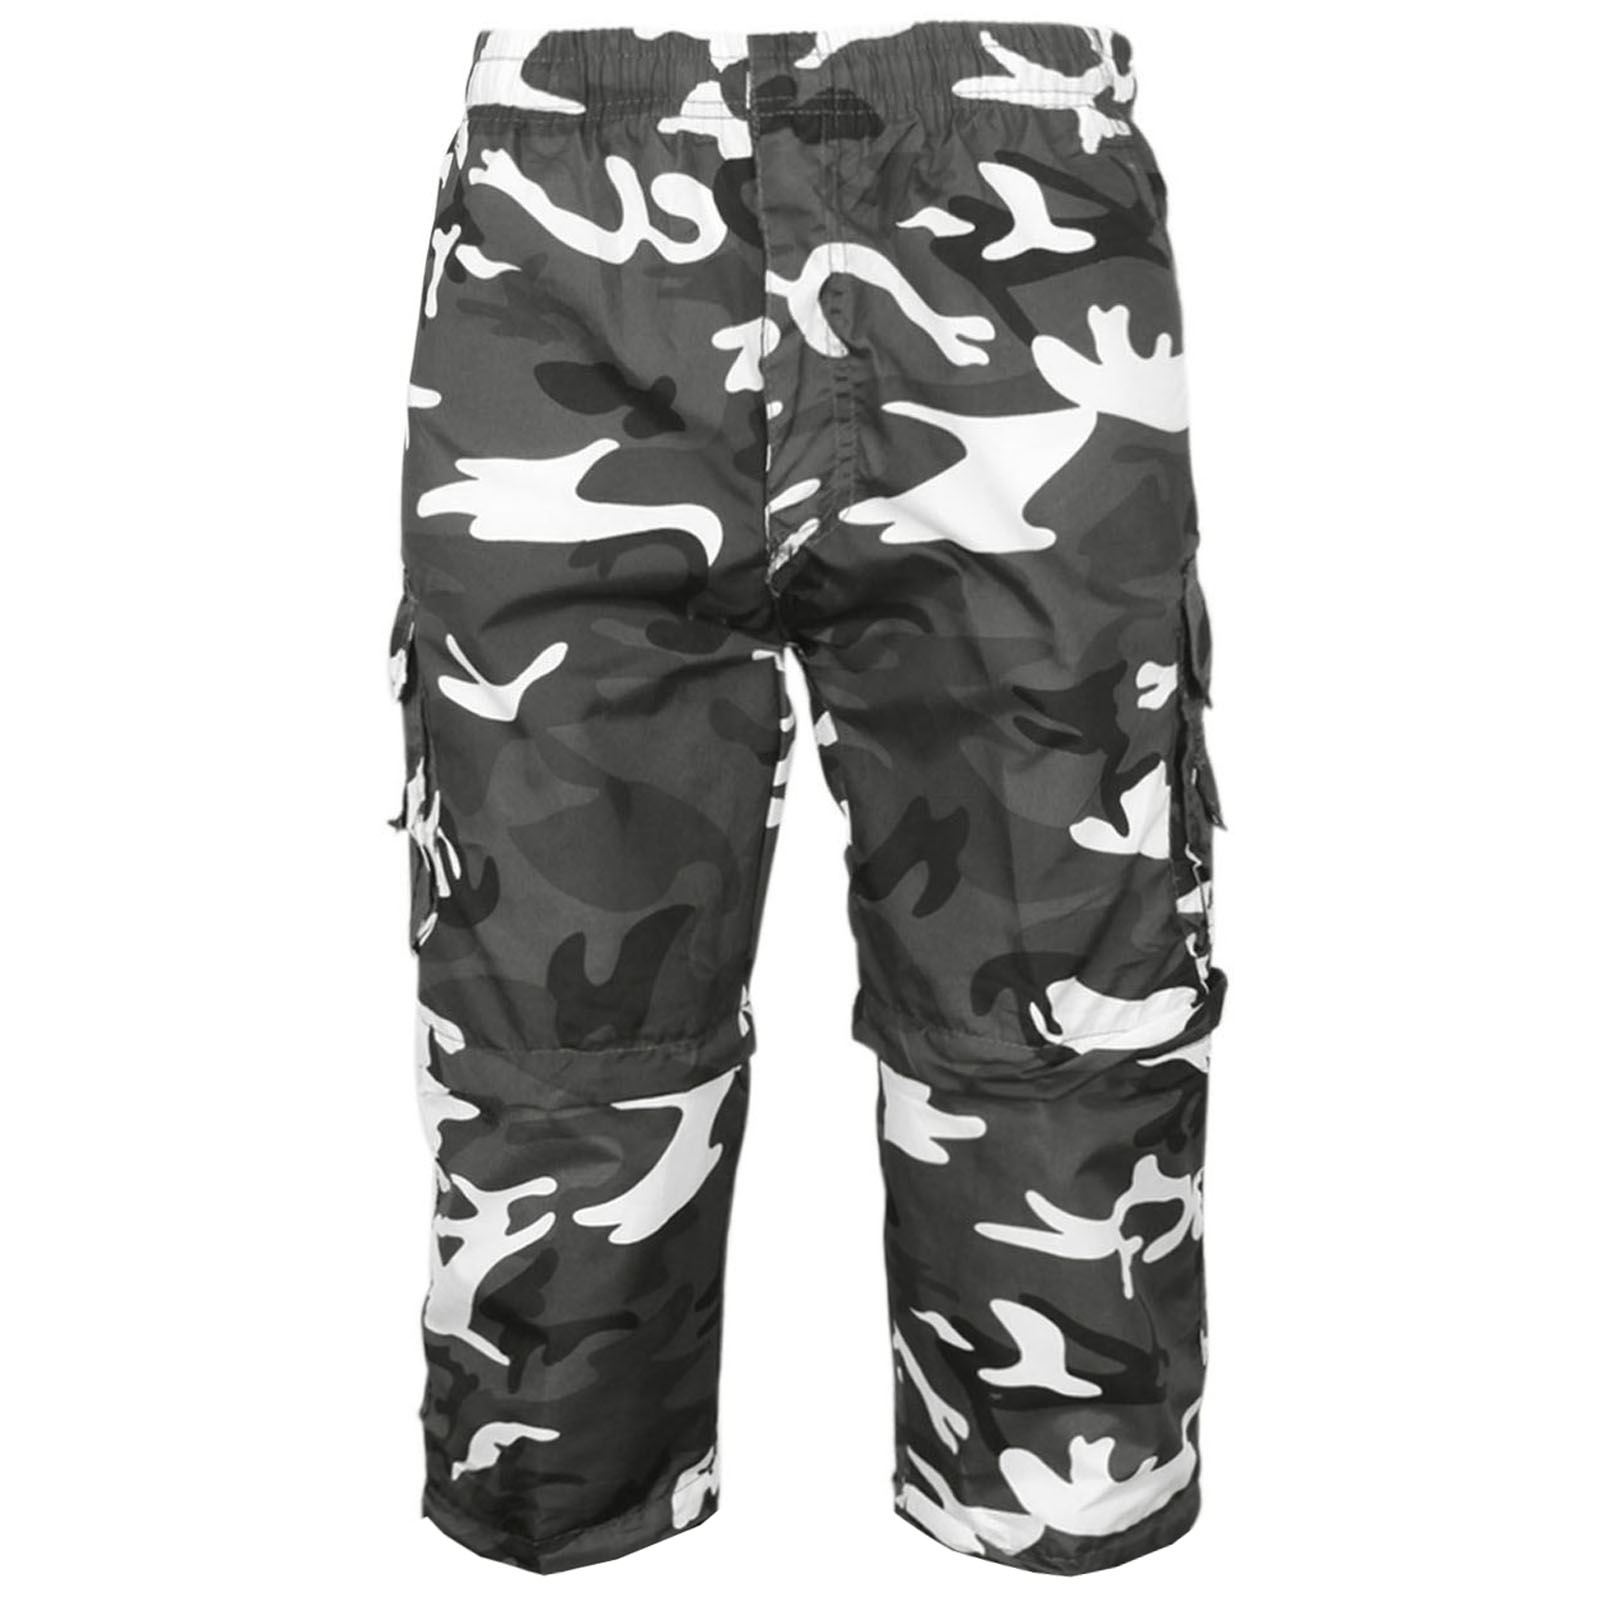 MENS-2-IN-1-CAMOUFLAGE-SHORTS-ARMY-ZIP-OFF-COMBAT-CARGO-TROUSERS-WORK-PANT-S-2XL thumbnail 6